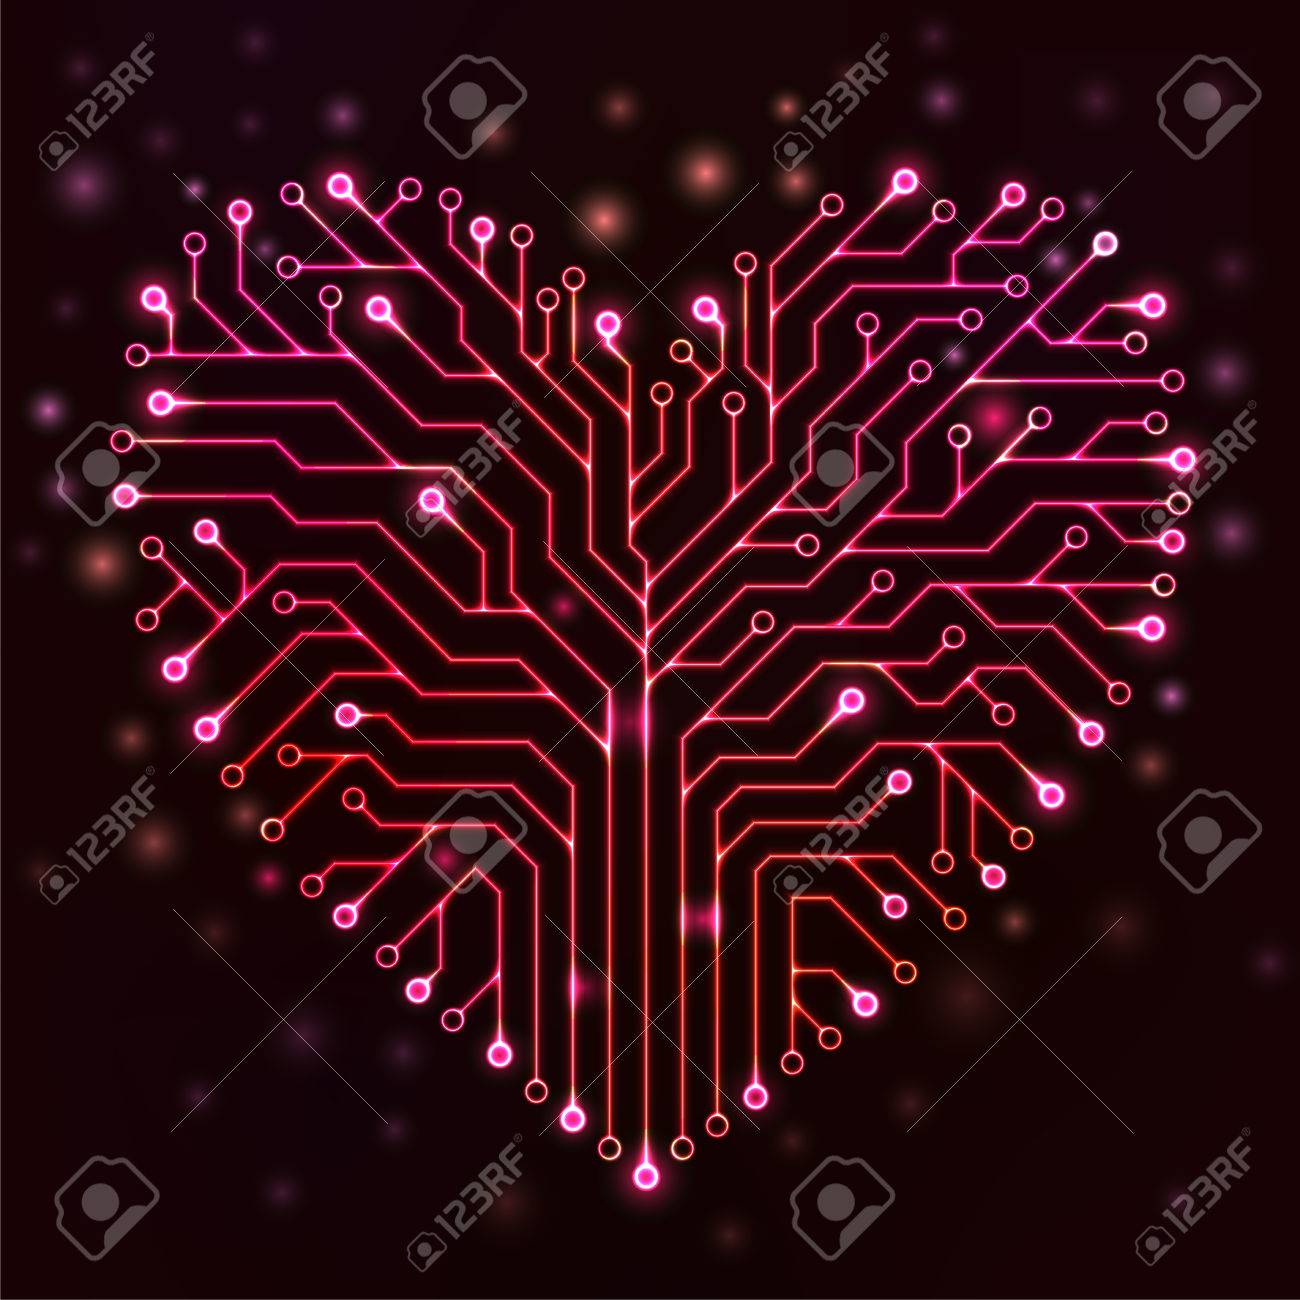 984 Pcb Background Stock Vector Illustration And Royalty Free Circuit Board Binary Code Clipart Transmission Of Printed In The Shape A Heart With Red Neon Lights